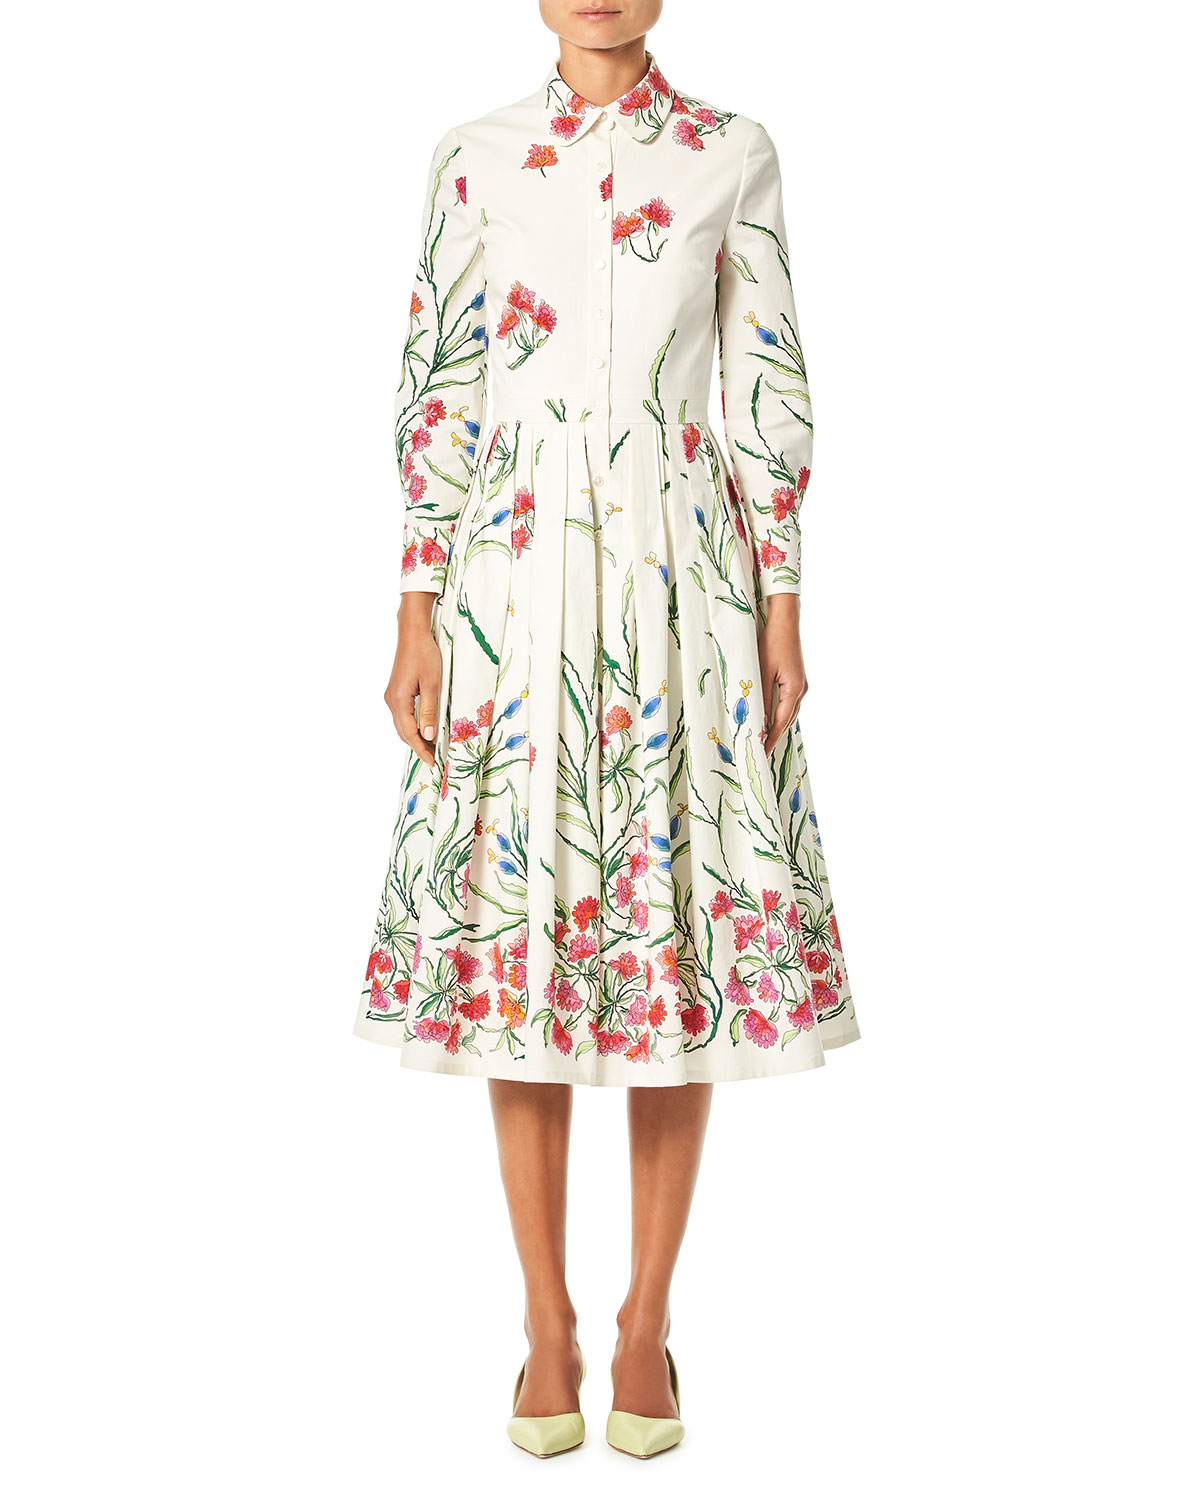 8dd677d9a4 Carolina HerreraButton-Front Long-Sleeve Floral-Print A-Line Shirtdress